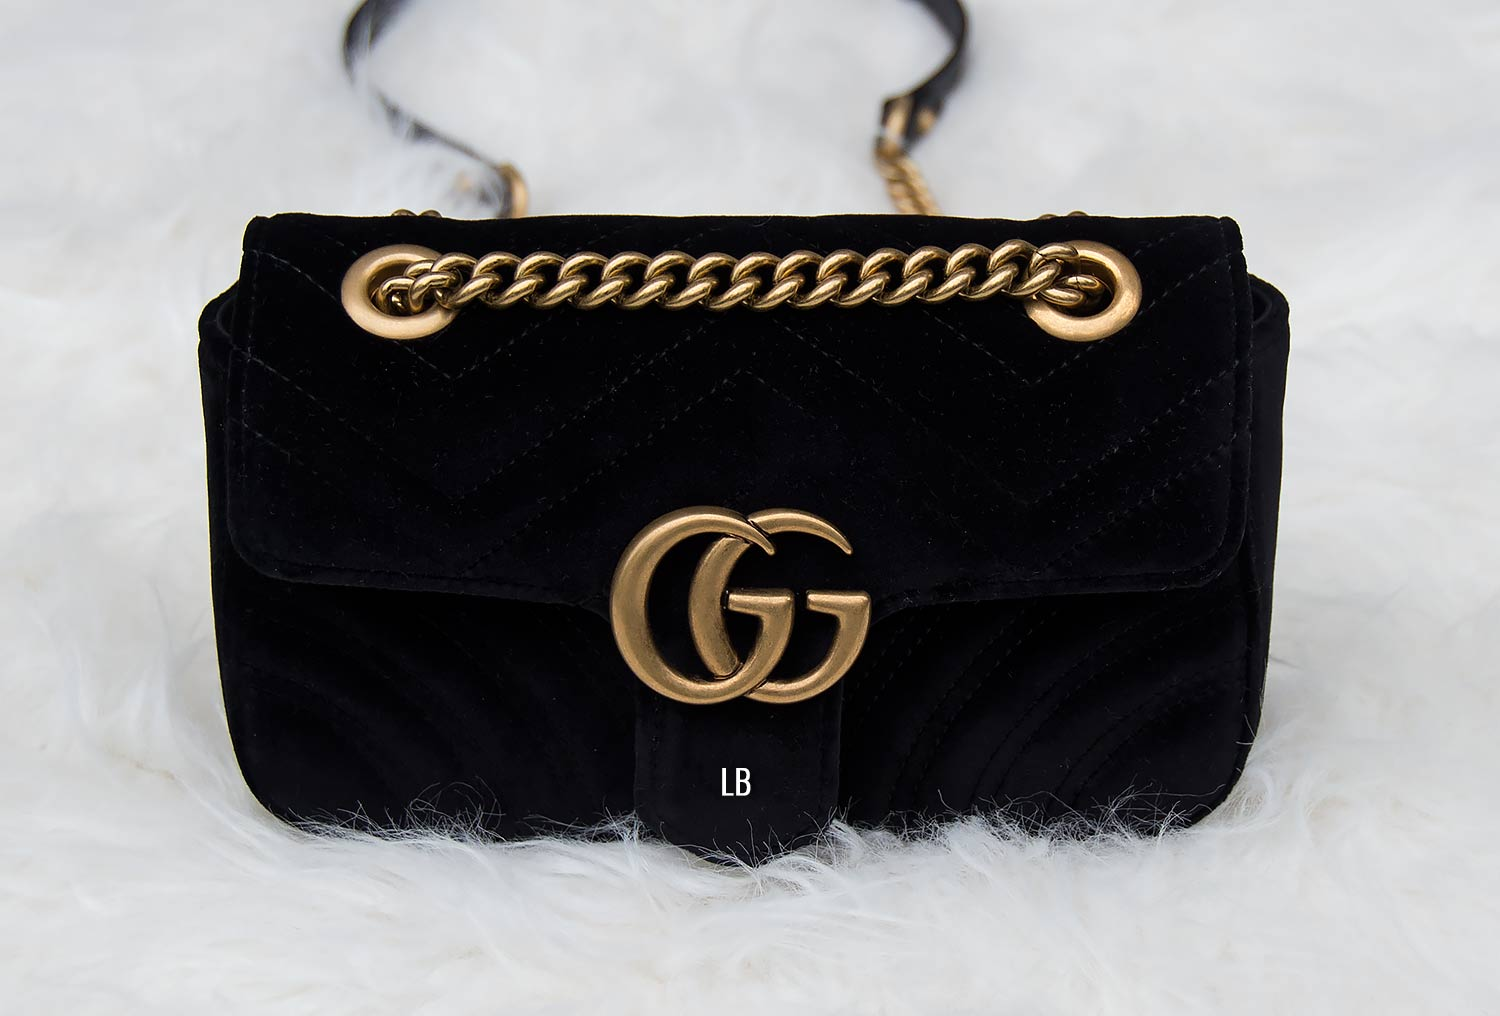 2ea345cac247 Gucci GG Marmont Velvet Mini Bag Review | Raindrops of Sapphire